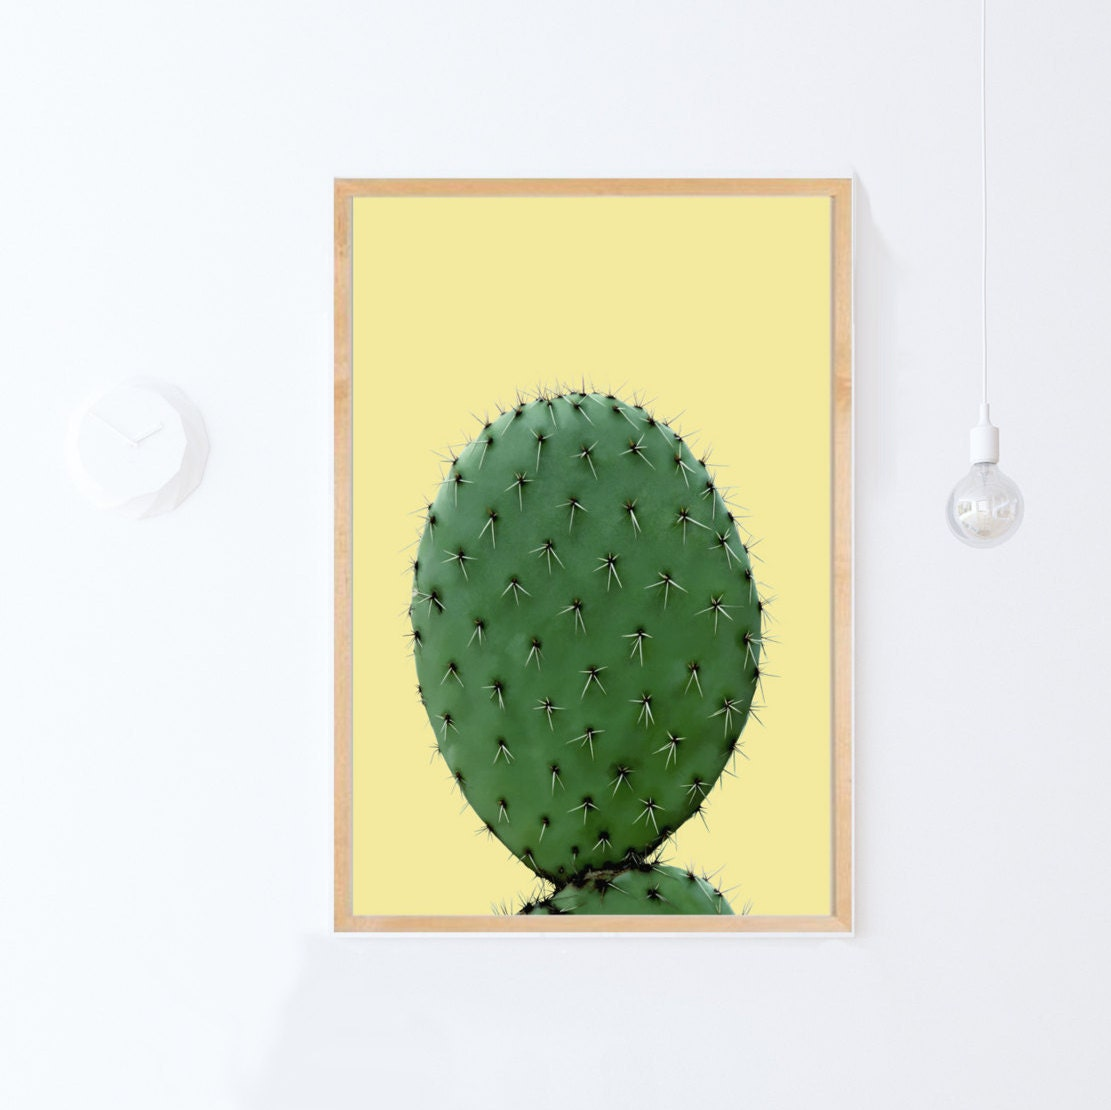 Yellow Wall Decor Print Cactus Art Large Poster Download | Etsy